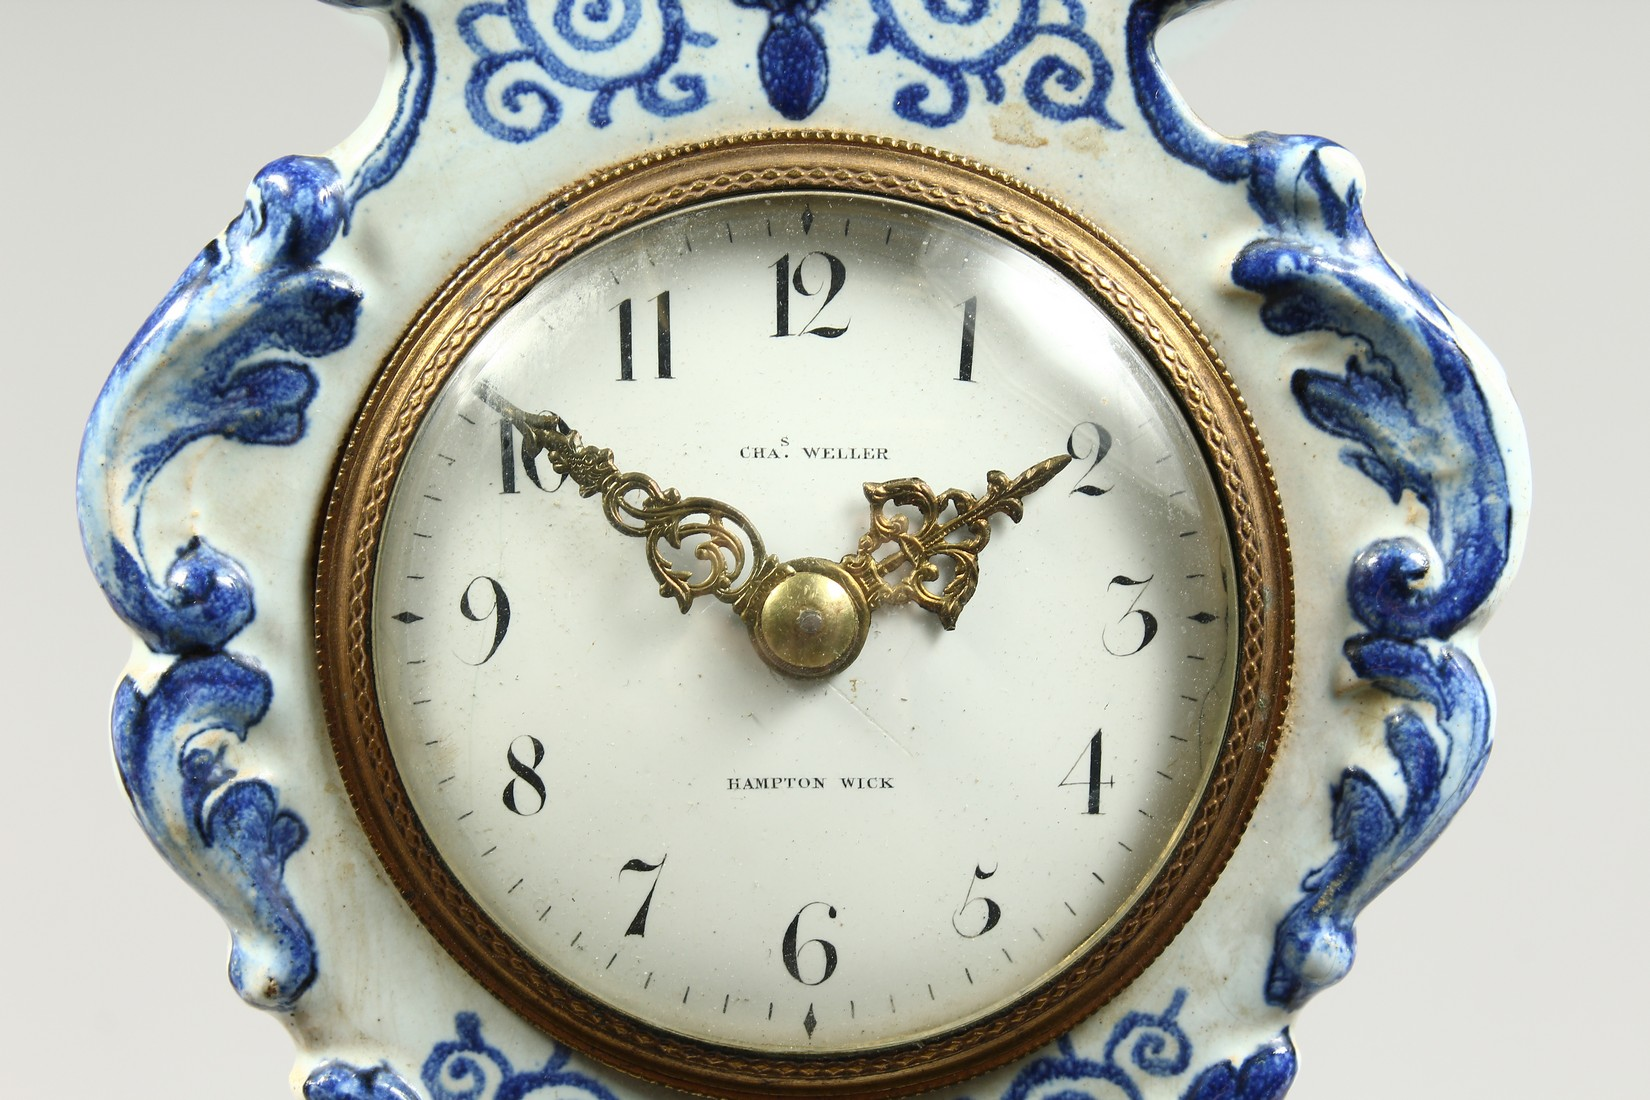 A 19TH CENTURY DUTCH BLUE AND WHITE MINIATURE PORCELAIN LONGCASE CLOCK, the movement by Charles - Image 2 of 8